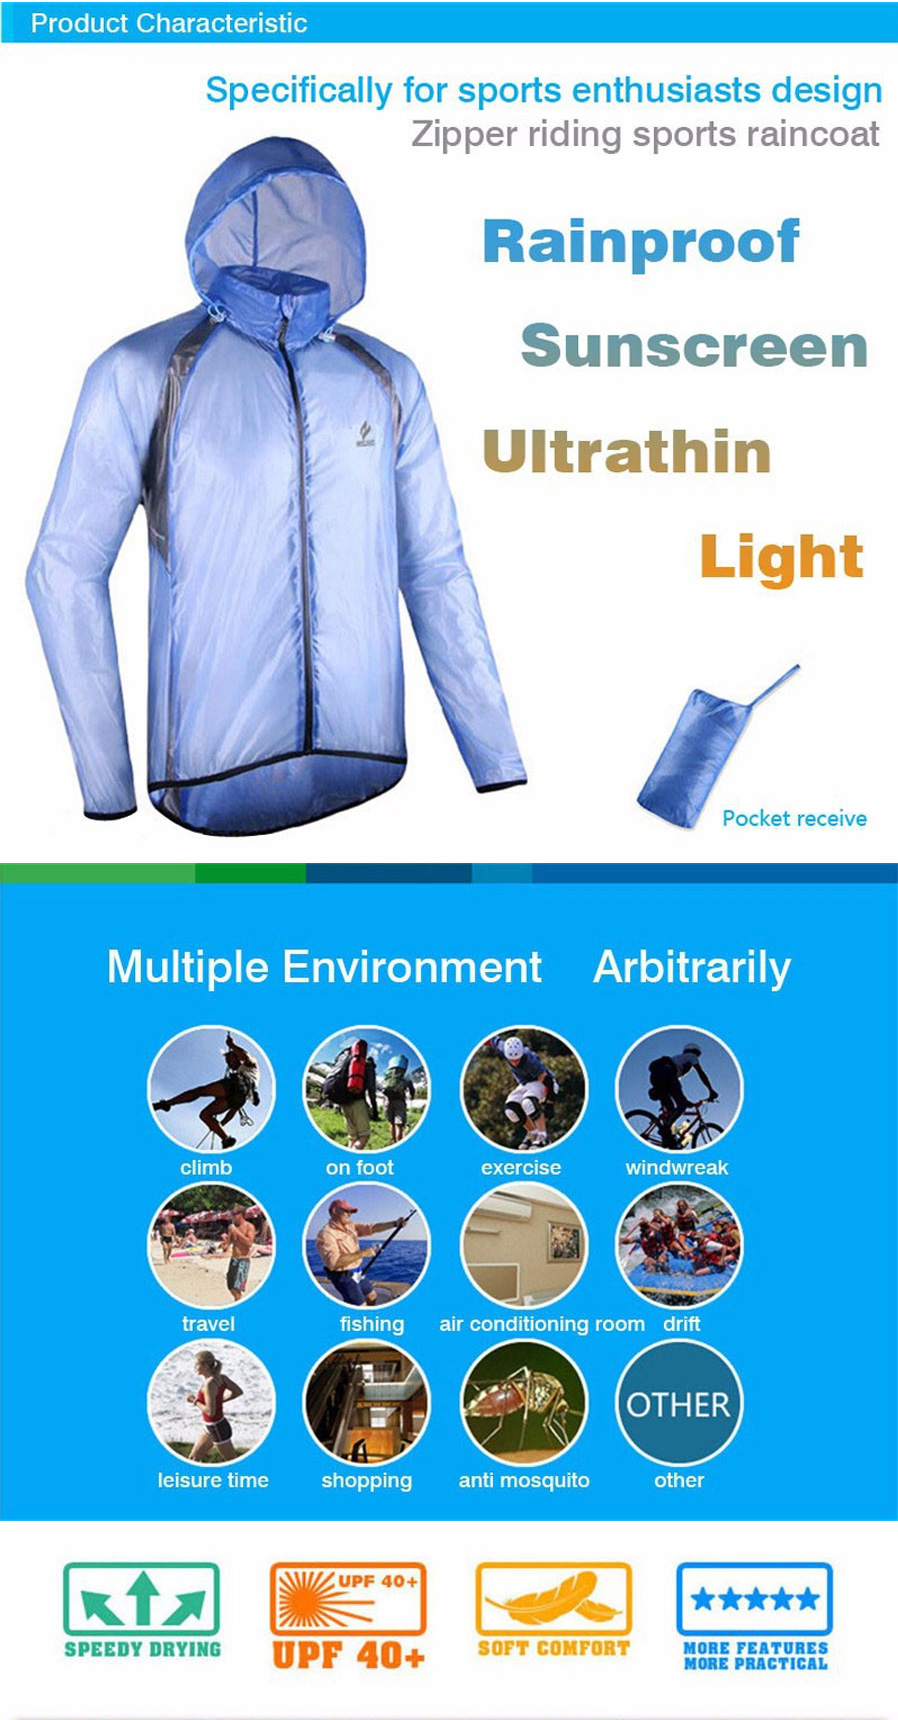 ARSUXEO Ultrathin Men s Cycling Rain Jacket - Fluorescent Green (L) - Free  Shipping - DealExtreme 4dcfba554d